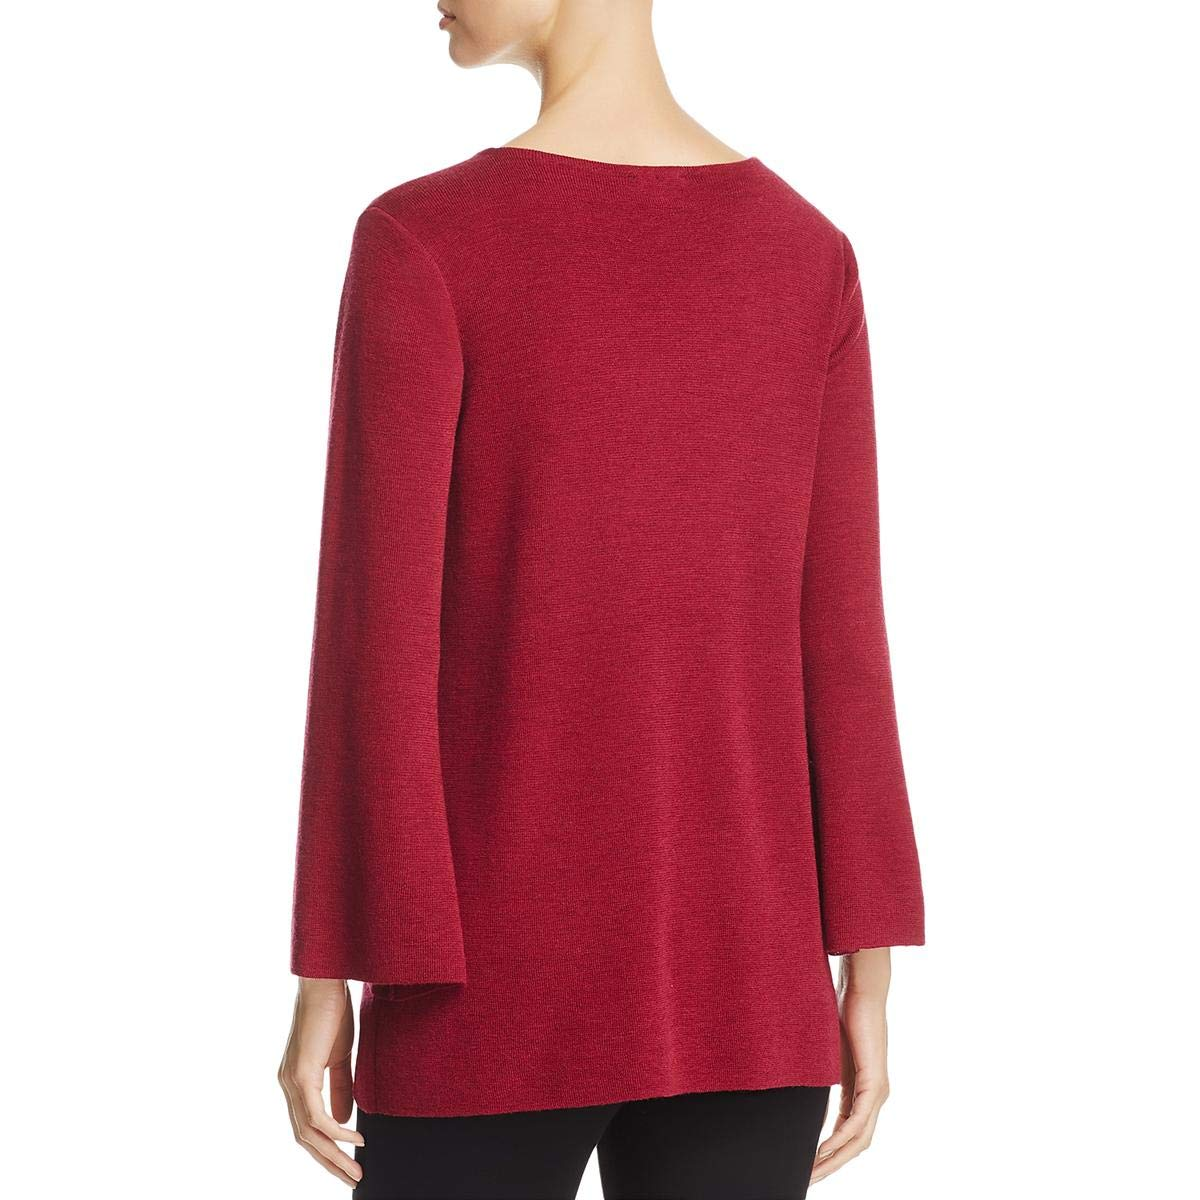 4d4fbec9737 Eileen Fisher Womens Merino Wool Bell Sleeve Pullover Sweater Red L at  Amazon Women s Clothing store